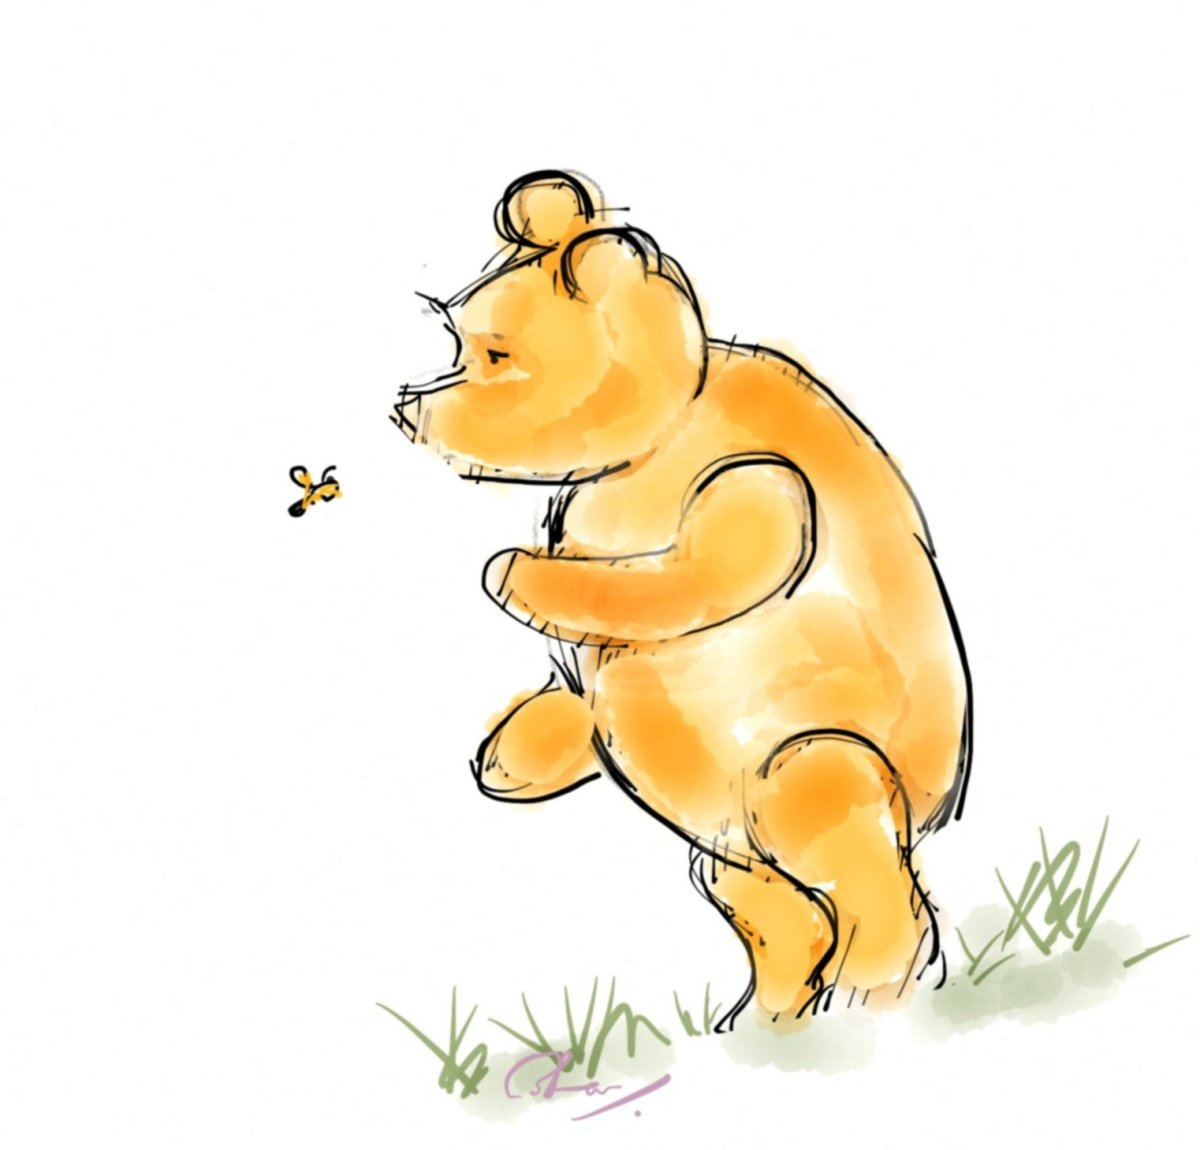 pooh-and-the-art-of-living-loving-all-is-well